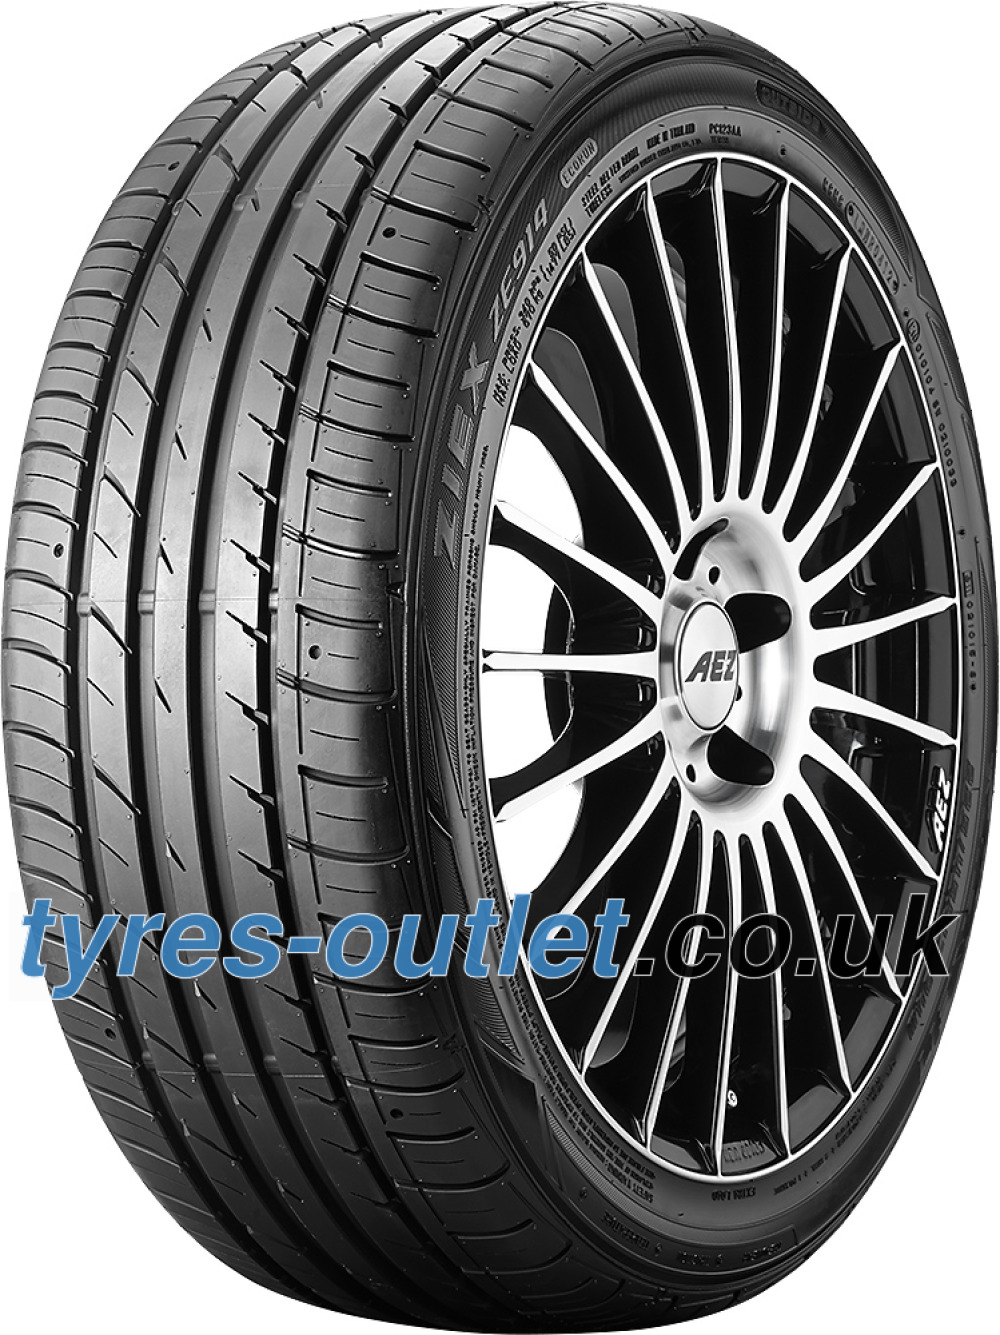 Falken Ziex ZE914 Ecorun ( 215/40 R18 89W XL with rim protection (MFS) )